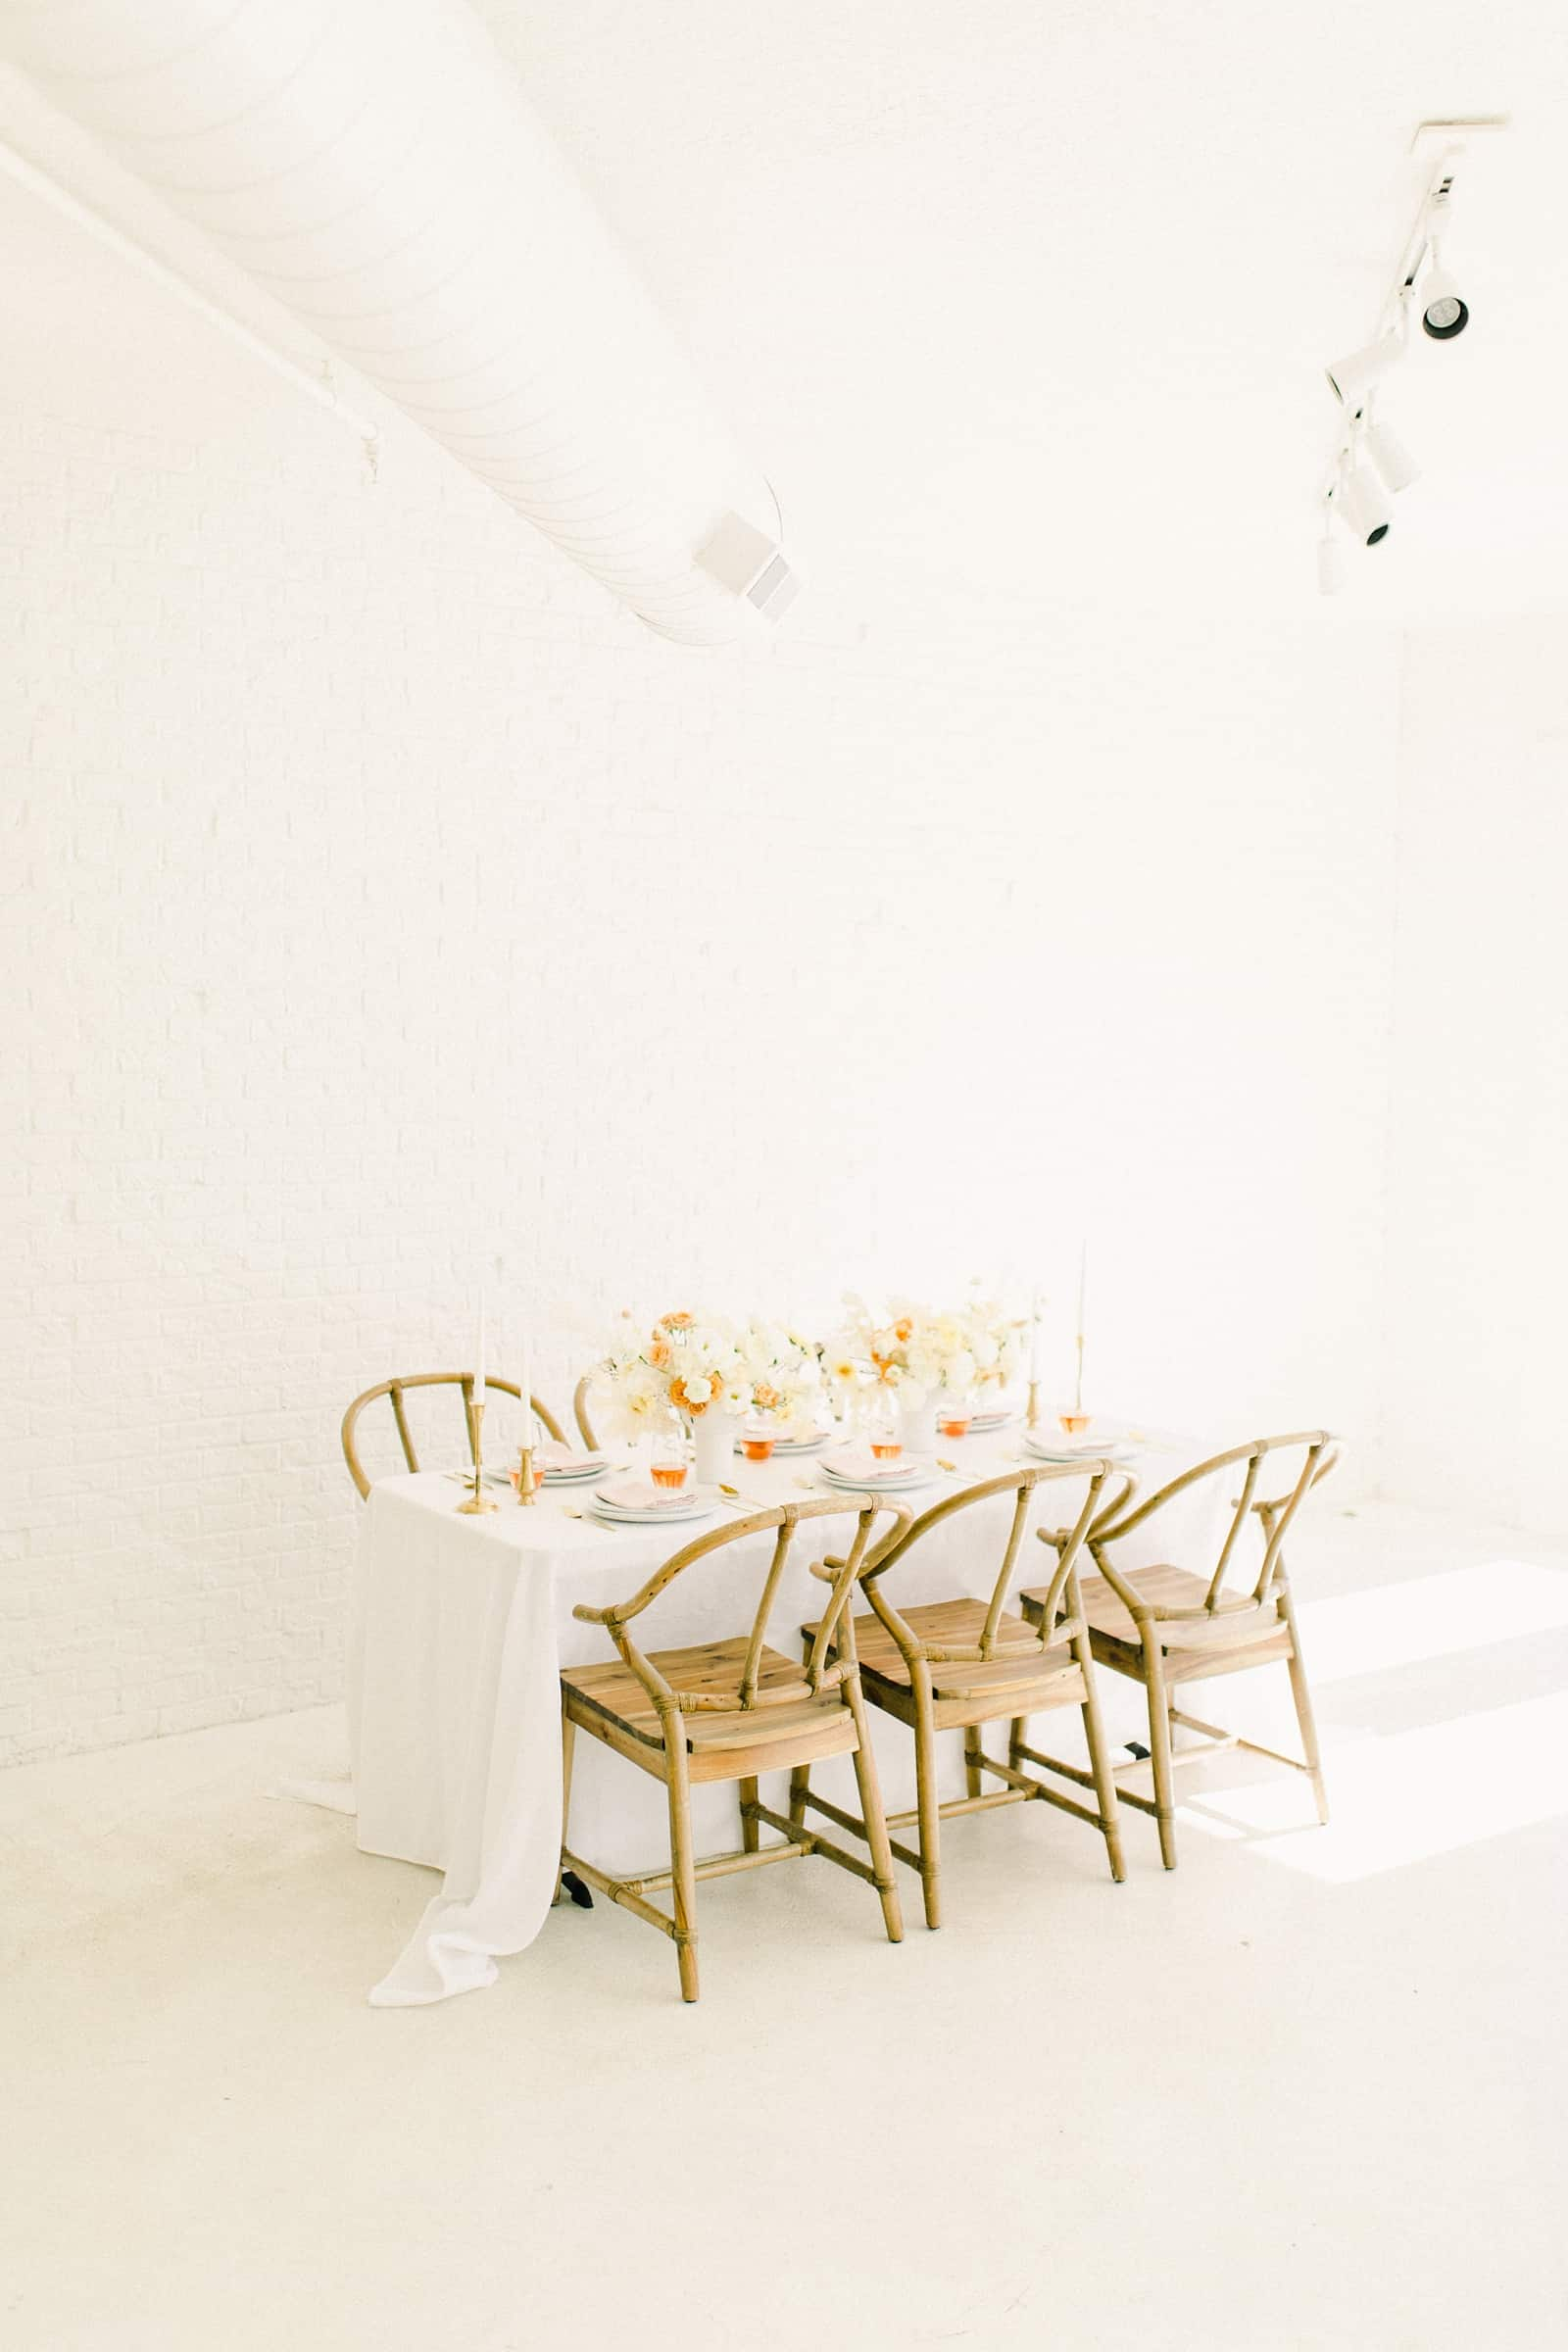 Modern wedding table settings with white tablecloth and neutral colors